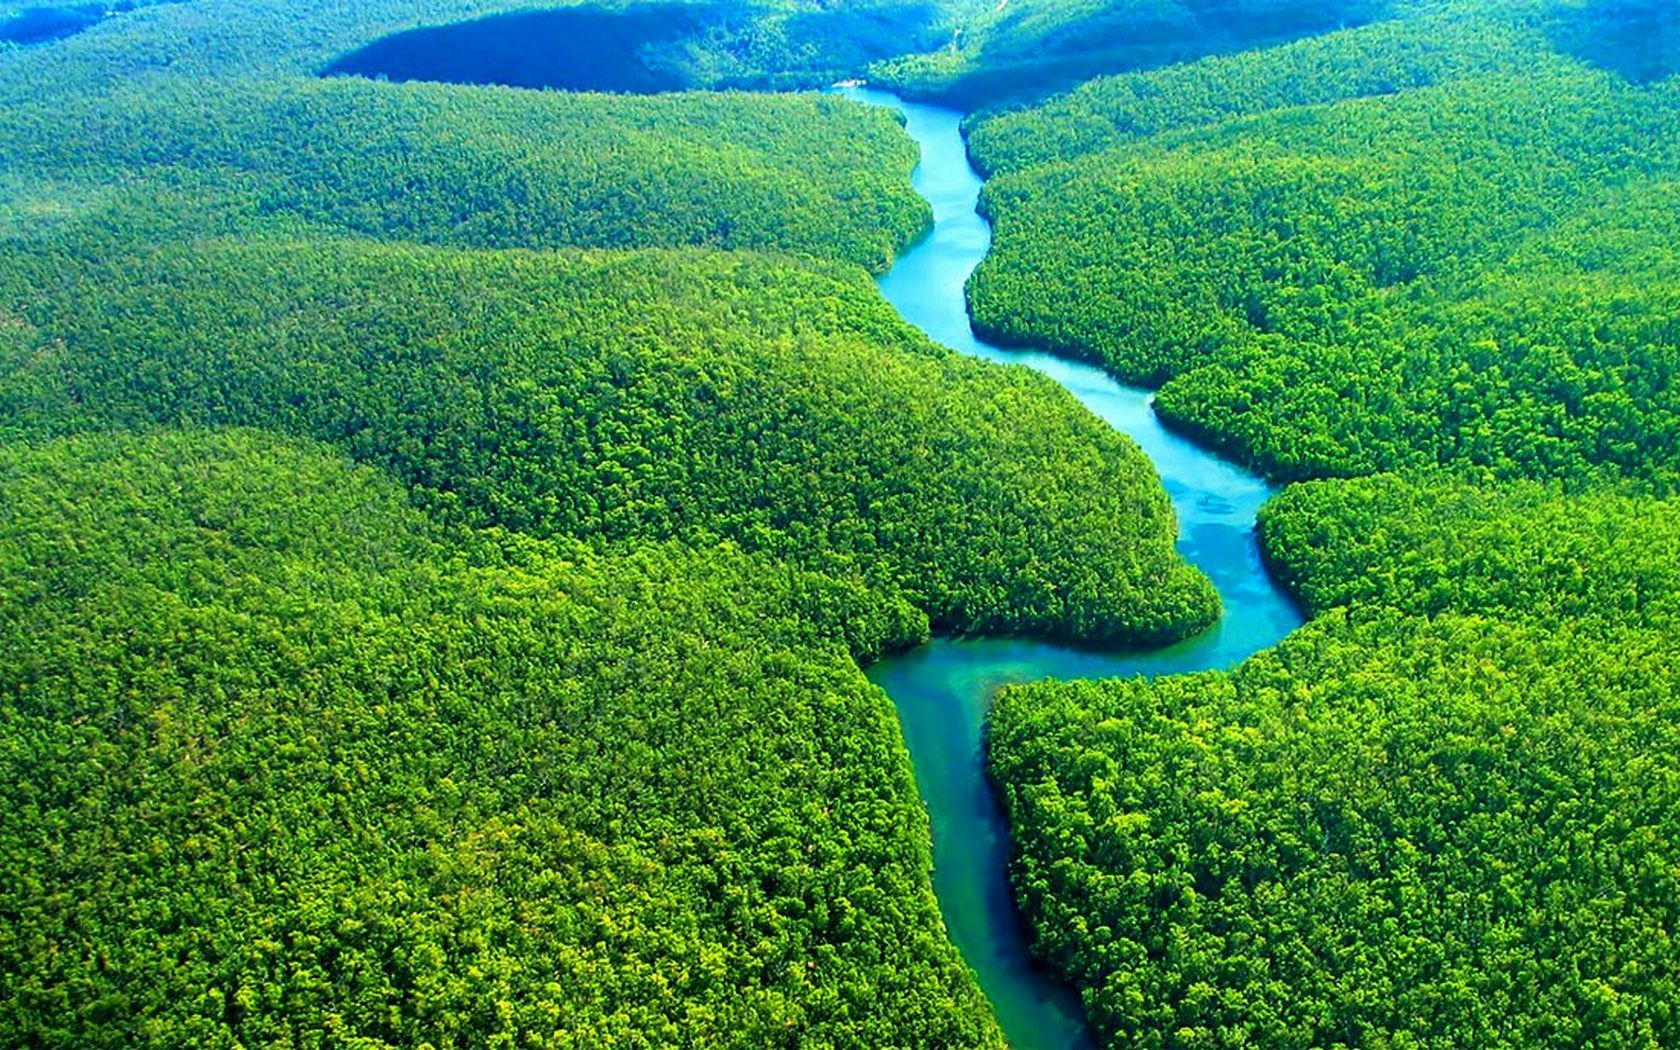 Amazon Rainforest Wallpaper for desktop and mobile in high resolution download. We have best ...